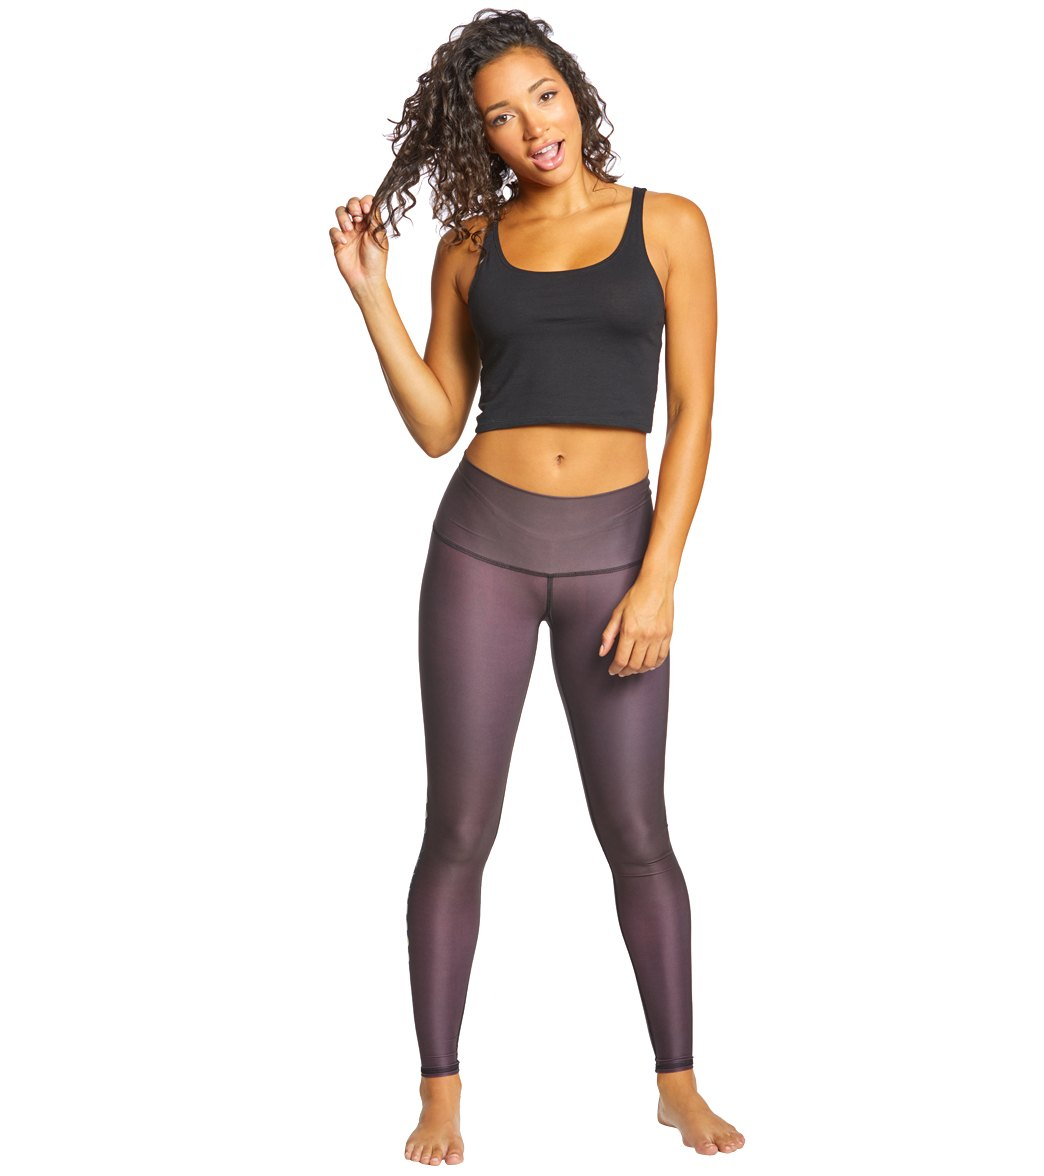 f590154b3dbbc Teeki Black Moon Hot Pants at YogaOutlet.com - Free Shipping